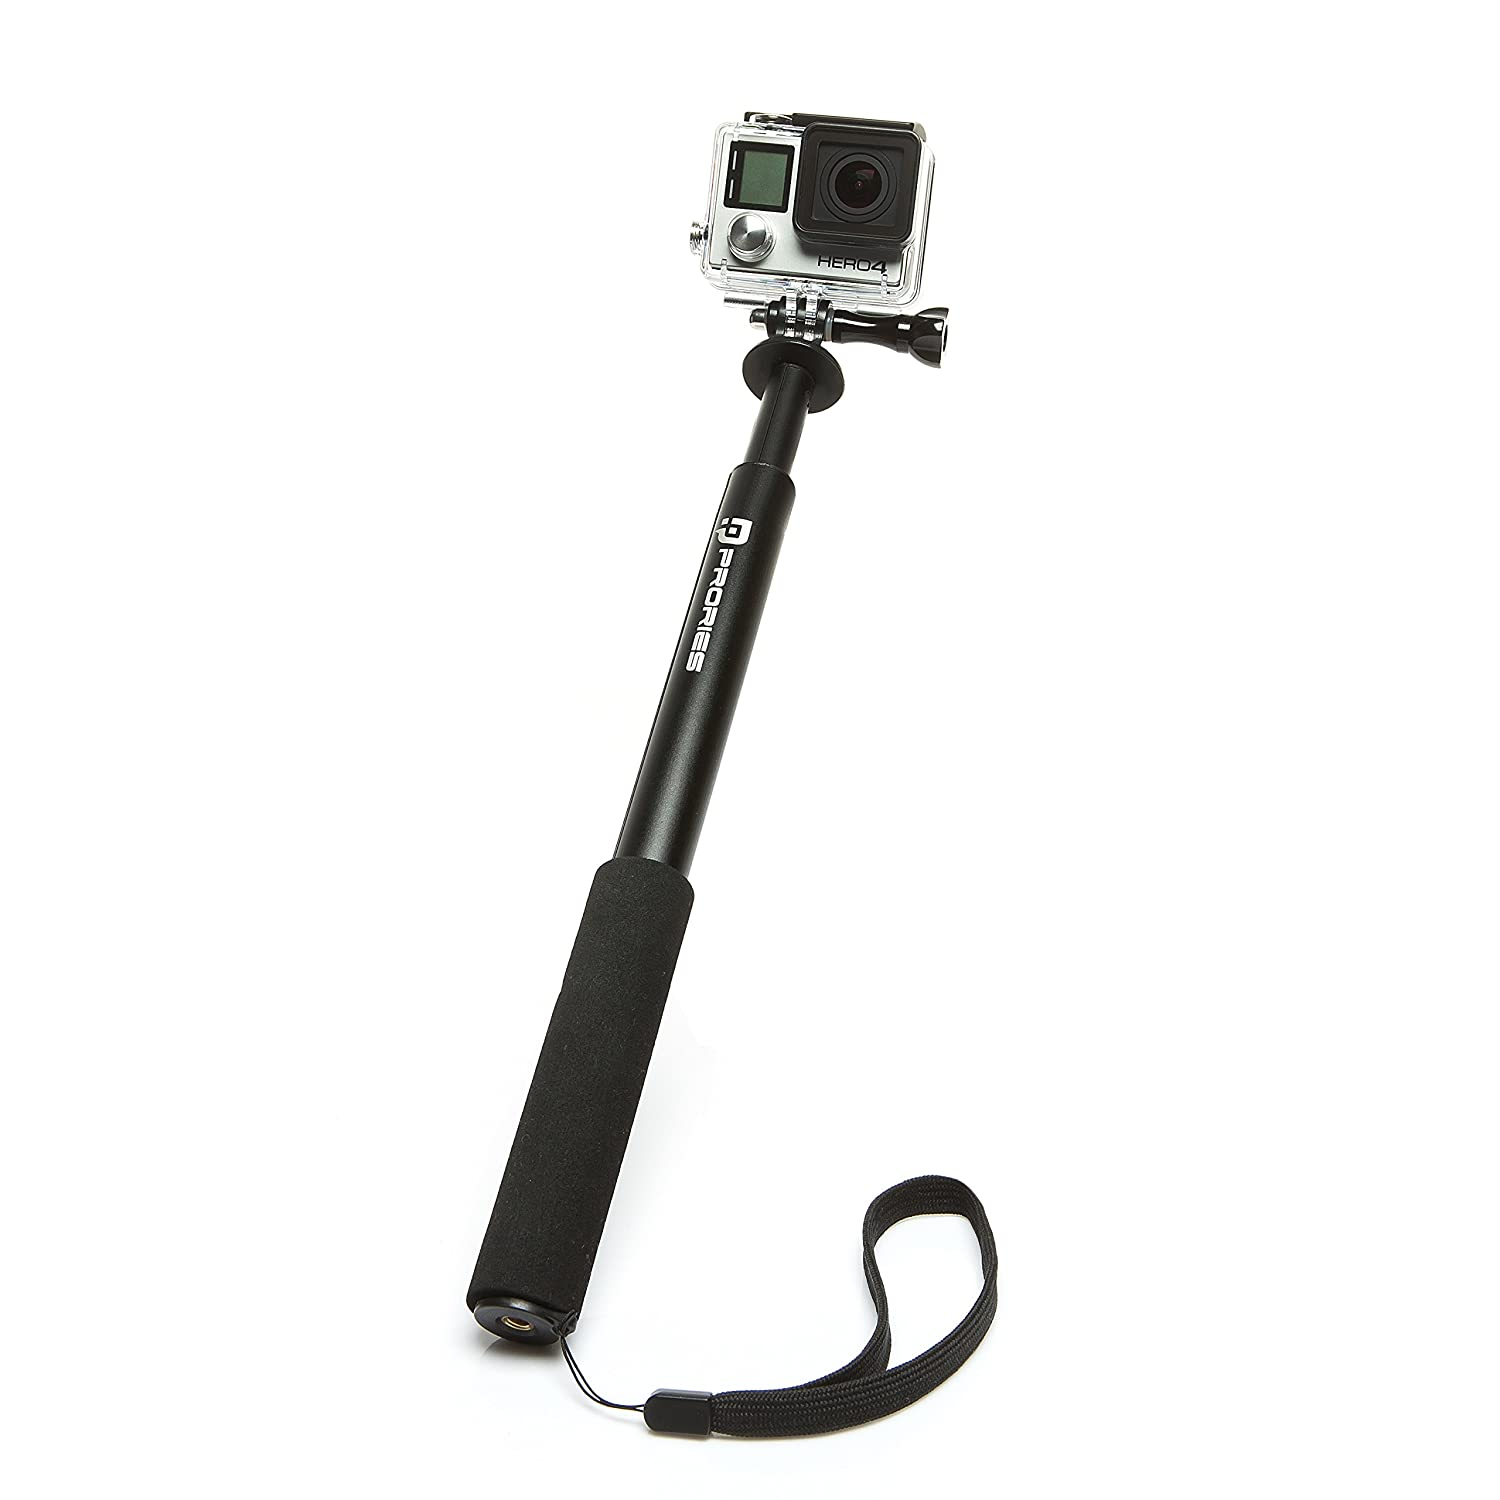 prories monopod selfie stick for gopro smartphone camera best lightweight ru buy it now sellsim. Black Bedroom Furniture Sets. Home Design Ideas